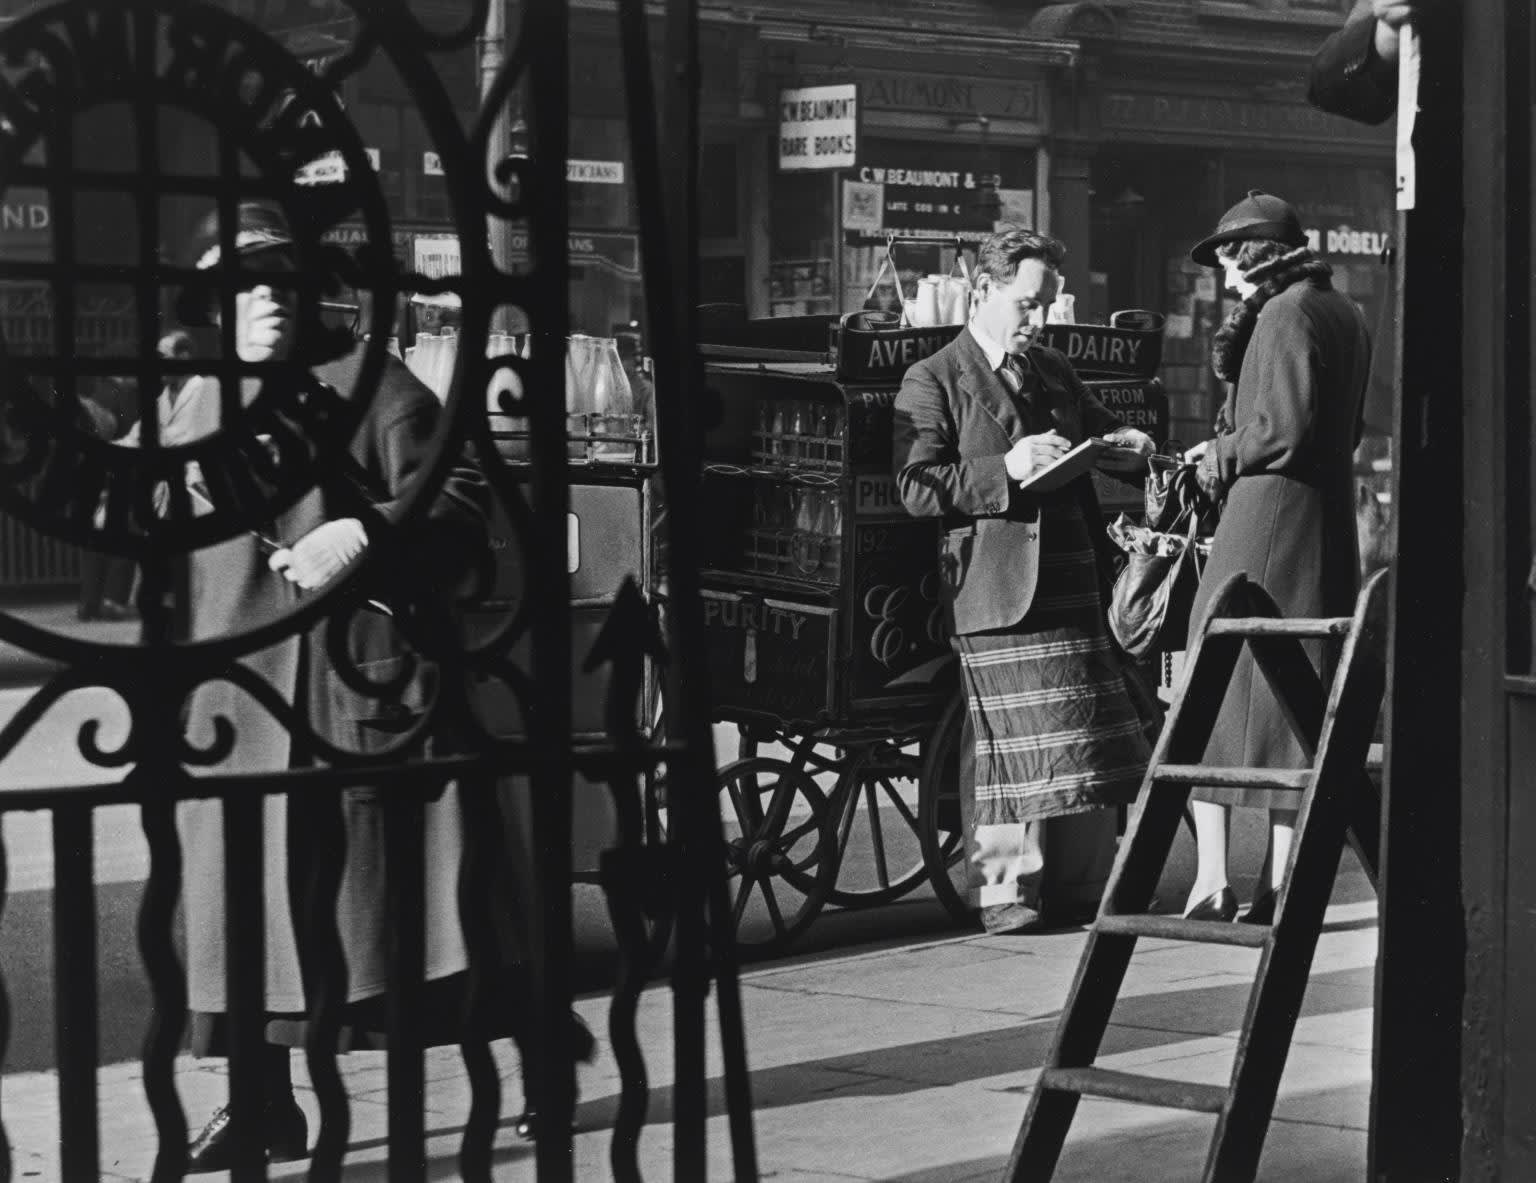 Charing Cross Road, The Weekly Bill, c.1937